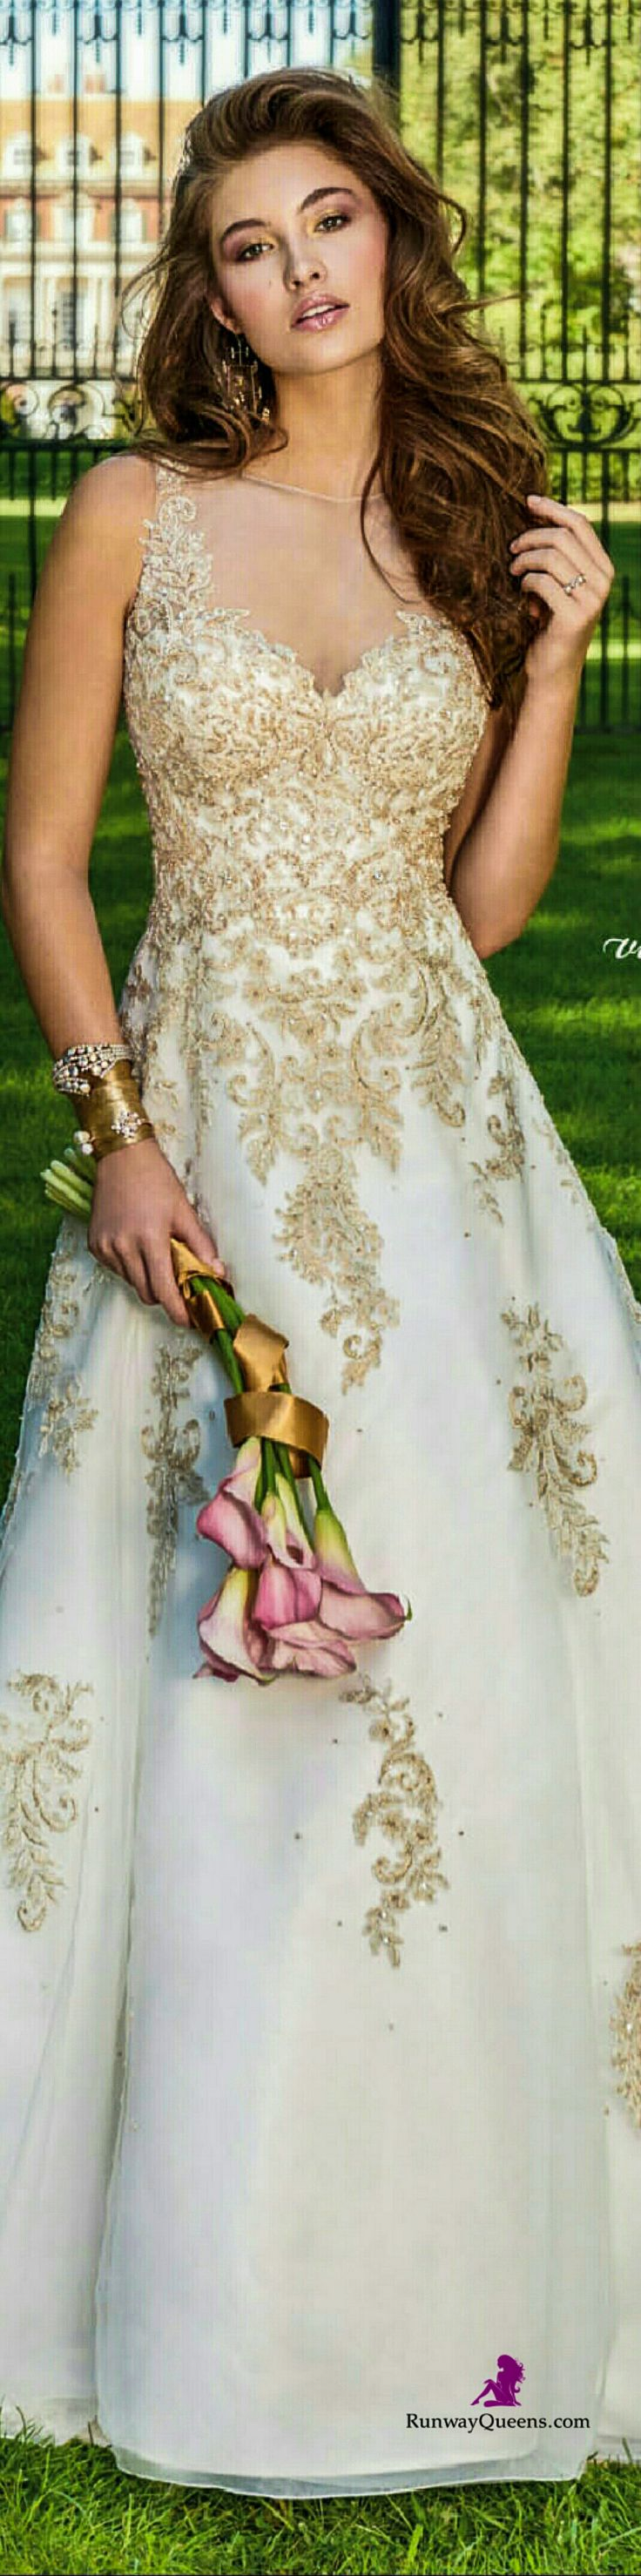 Camille, Bridal 2017, Gold embroidery, 2017